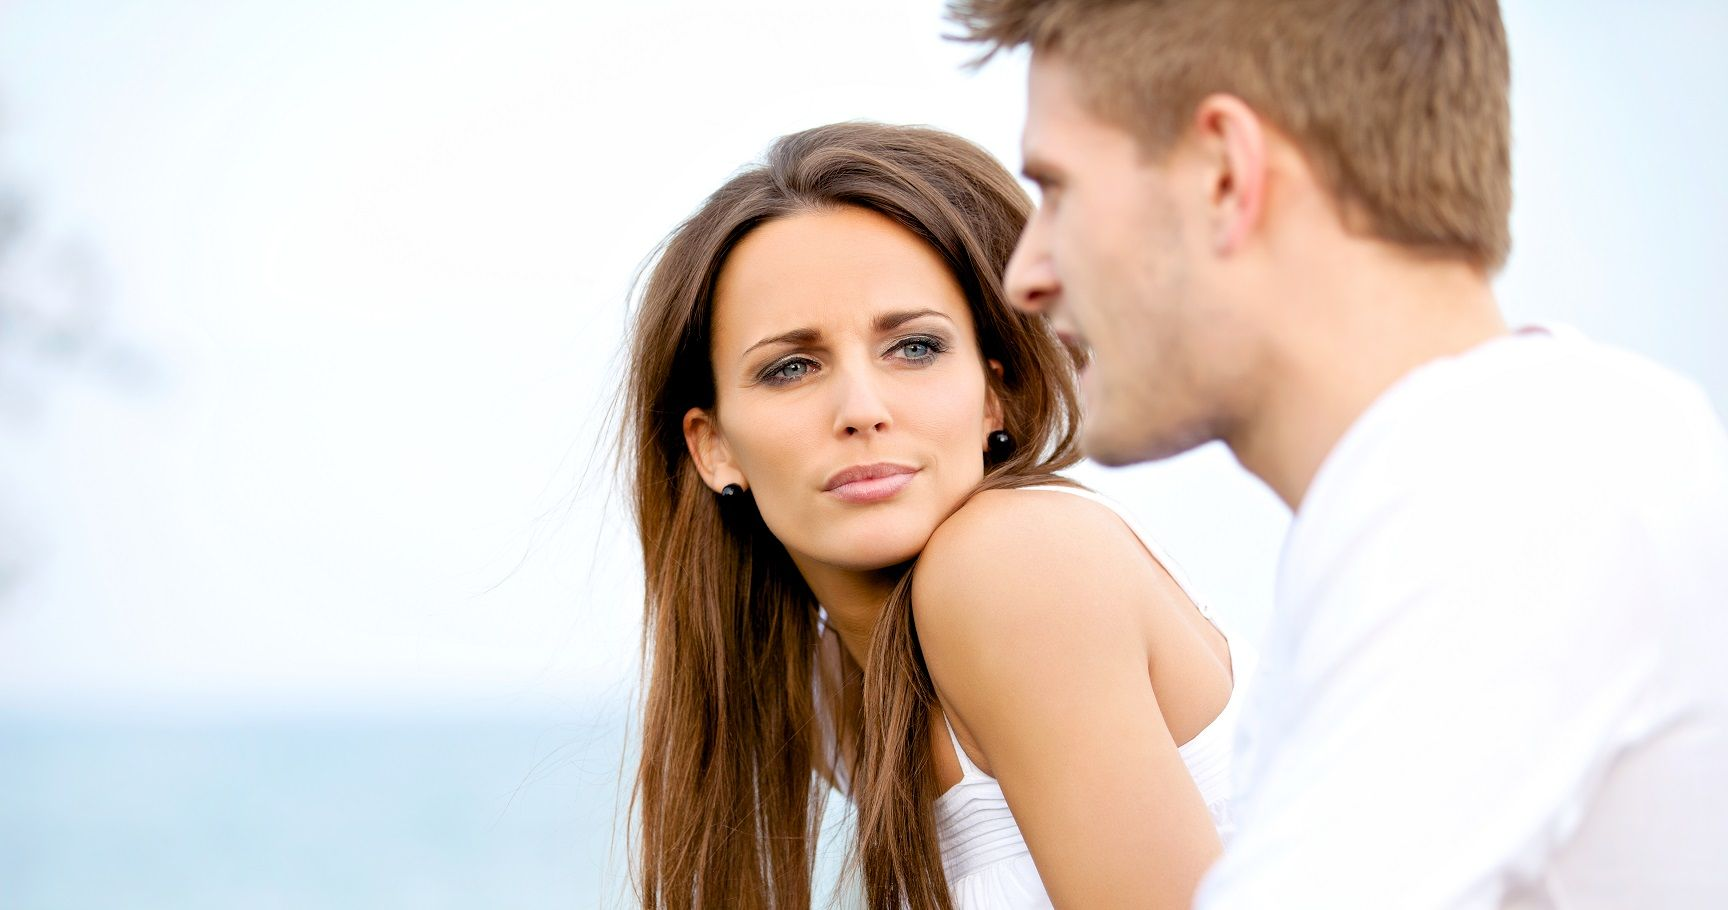 10 Signs She is No Longer Into You